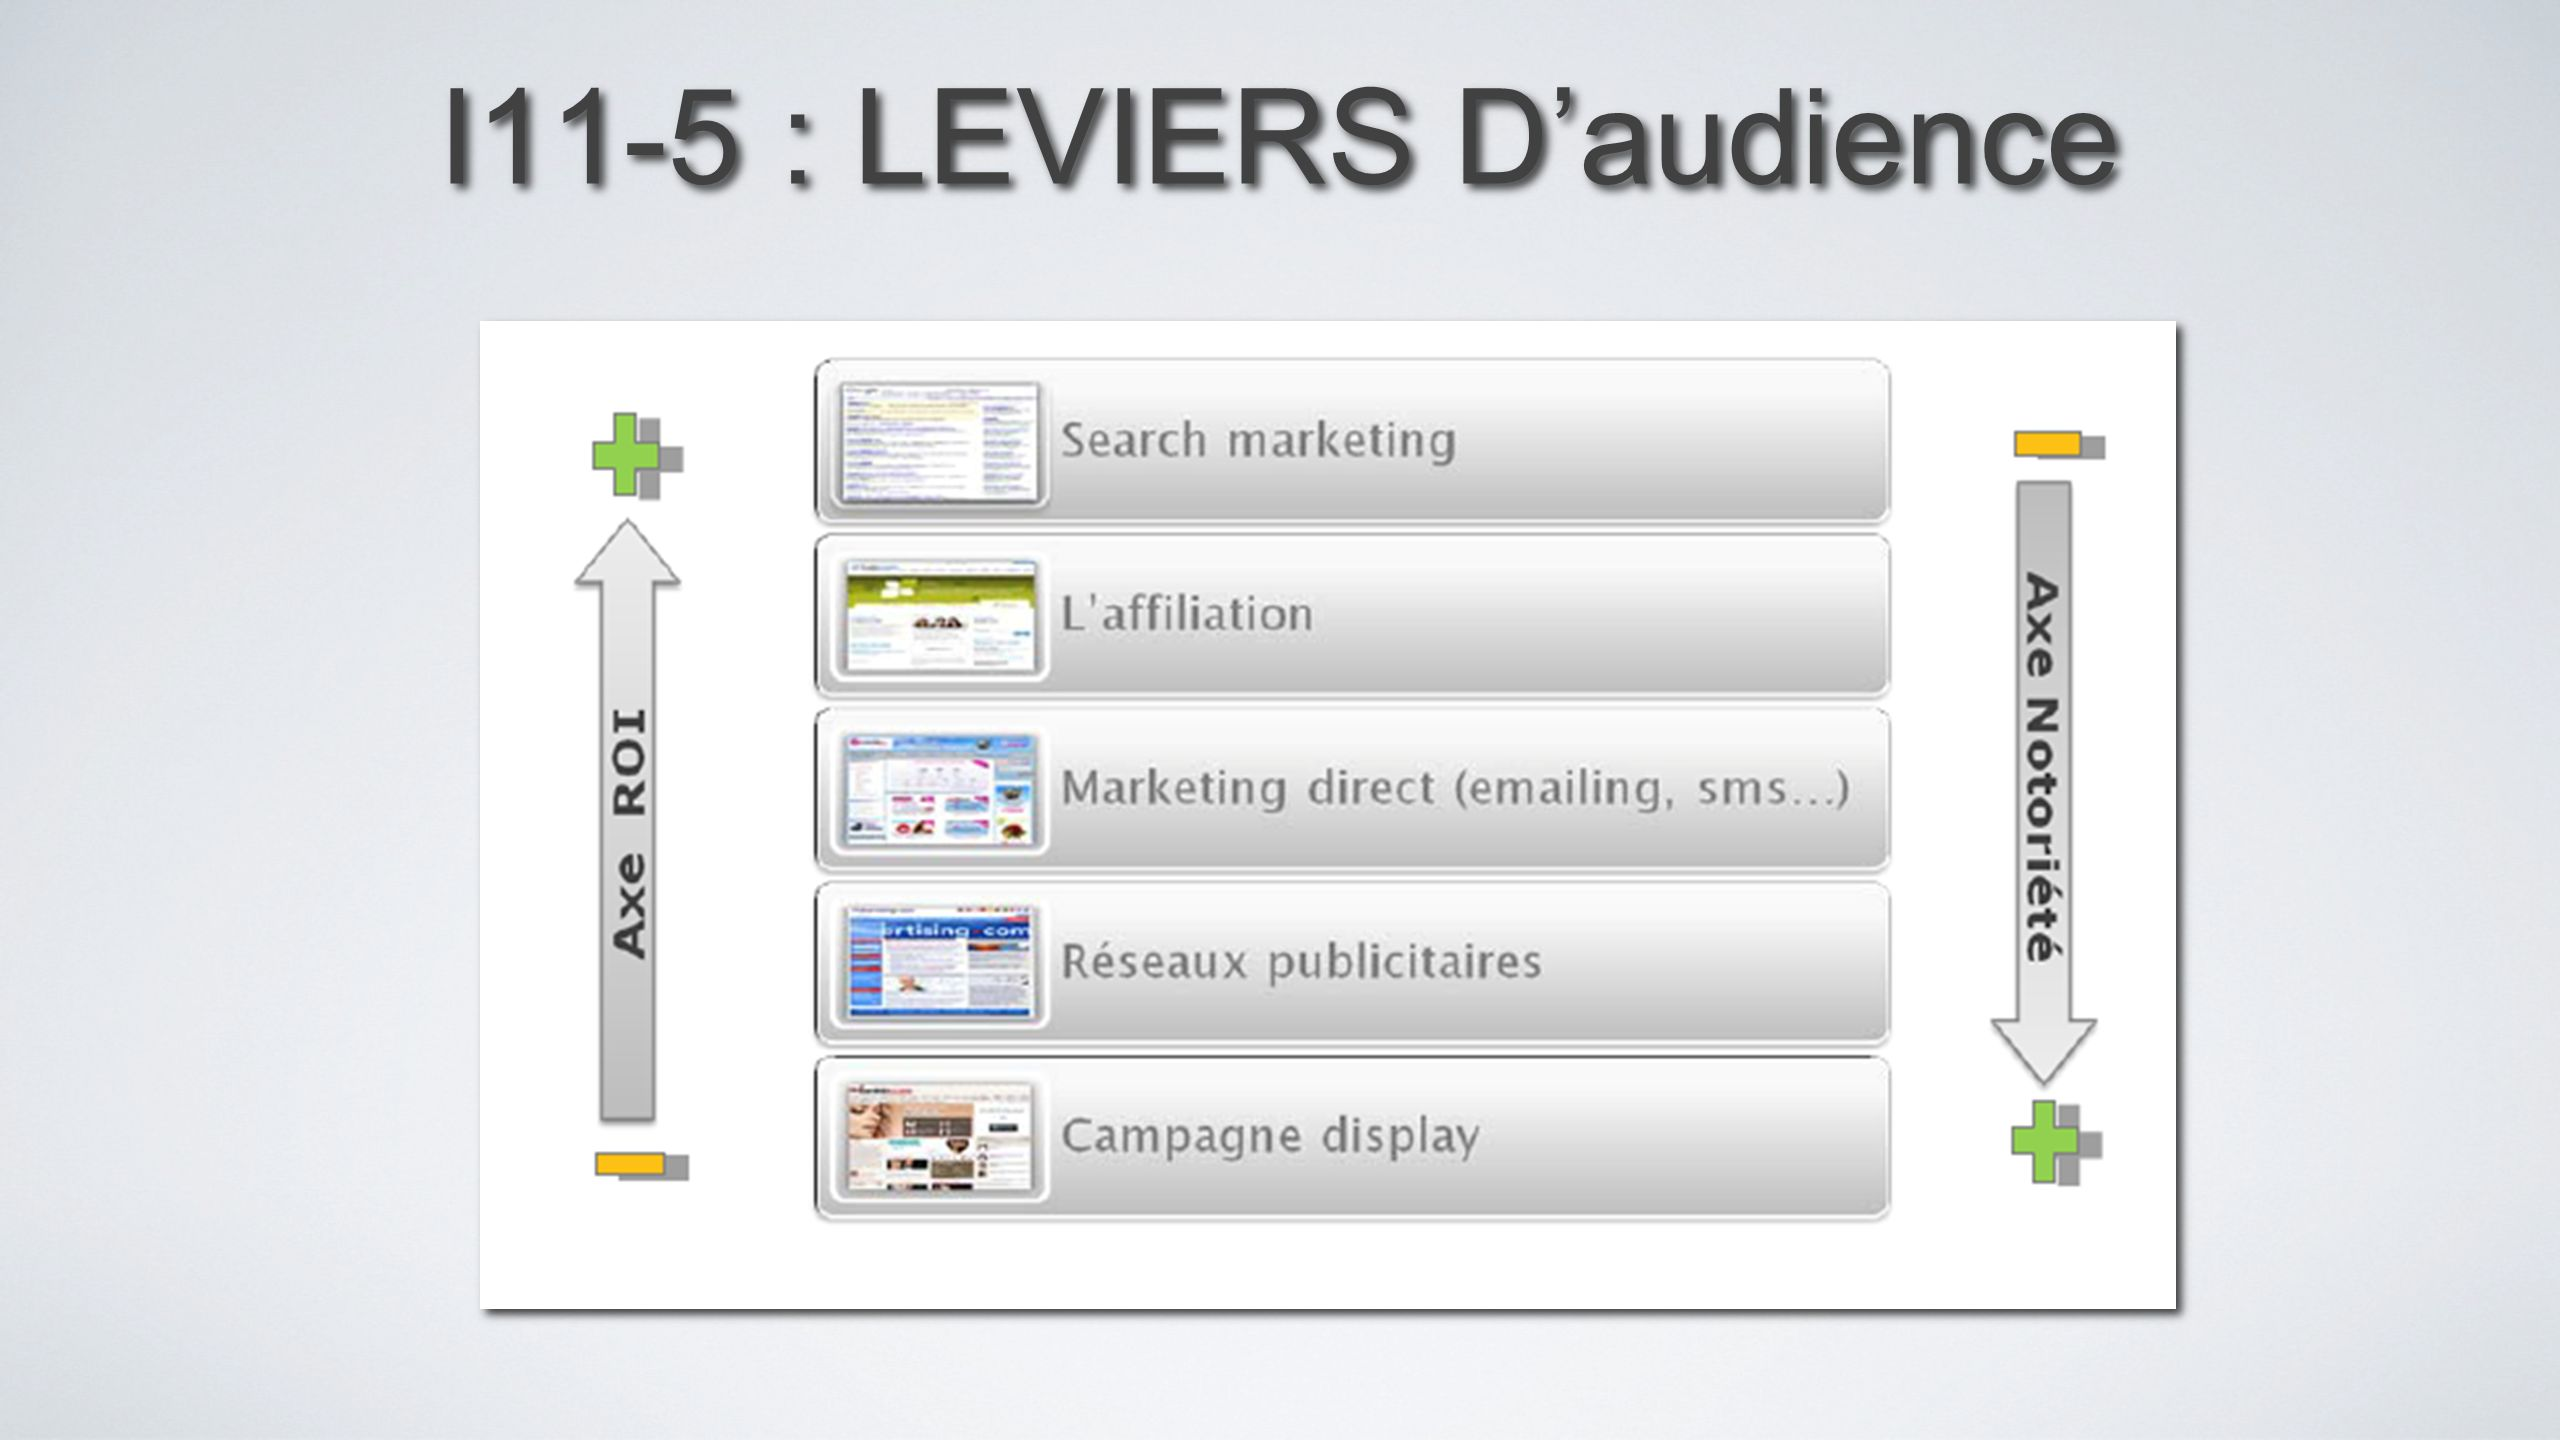 I11-5 : LEVIERS D'audience